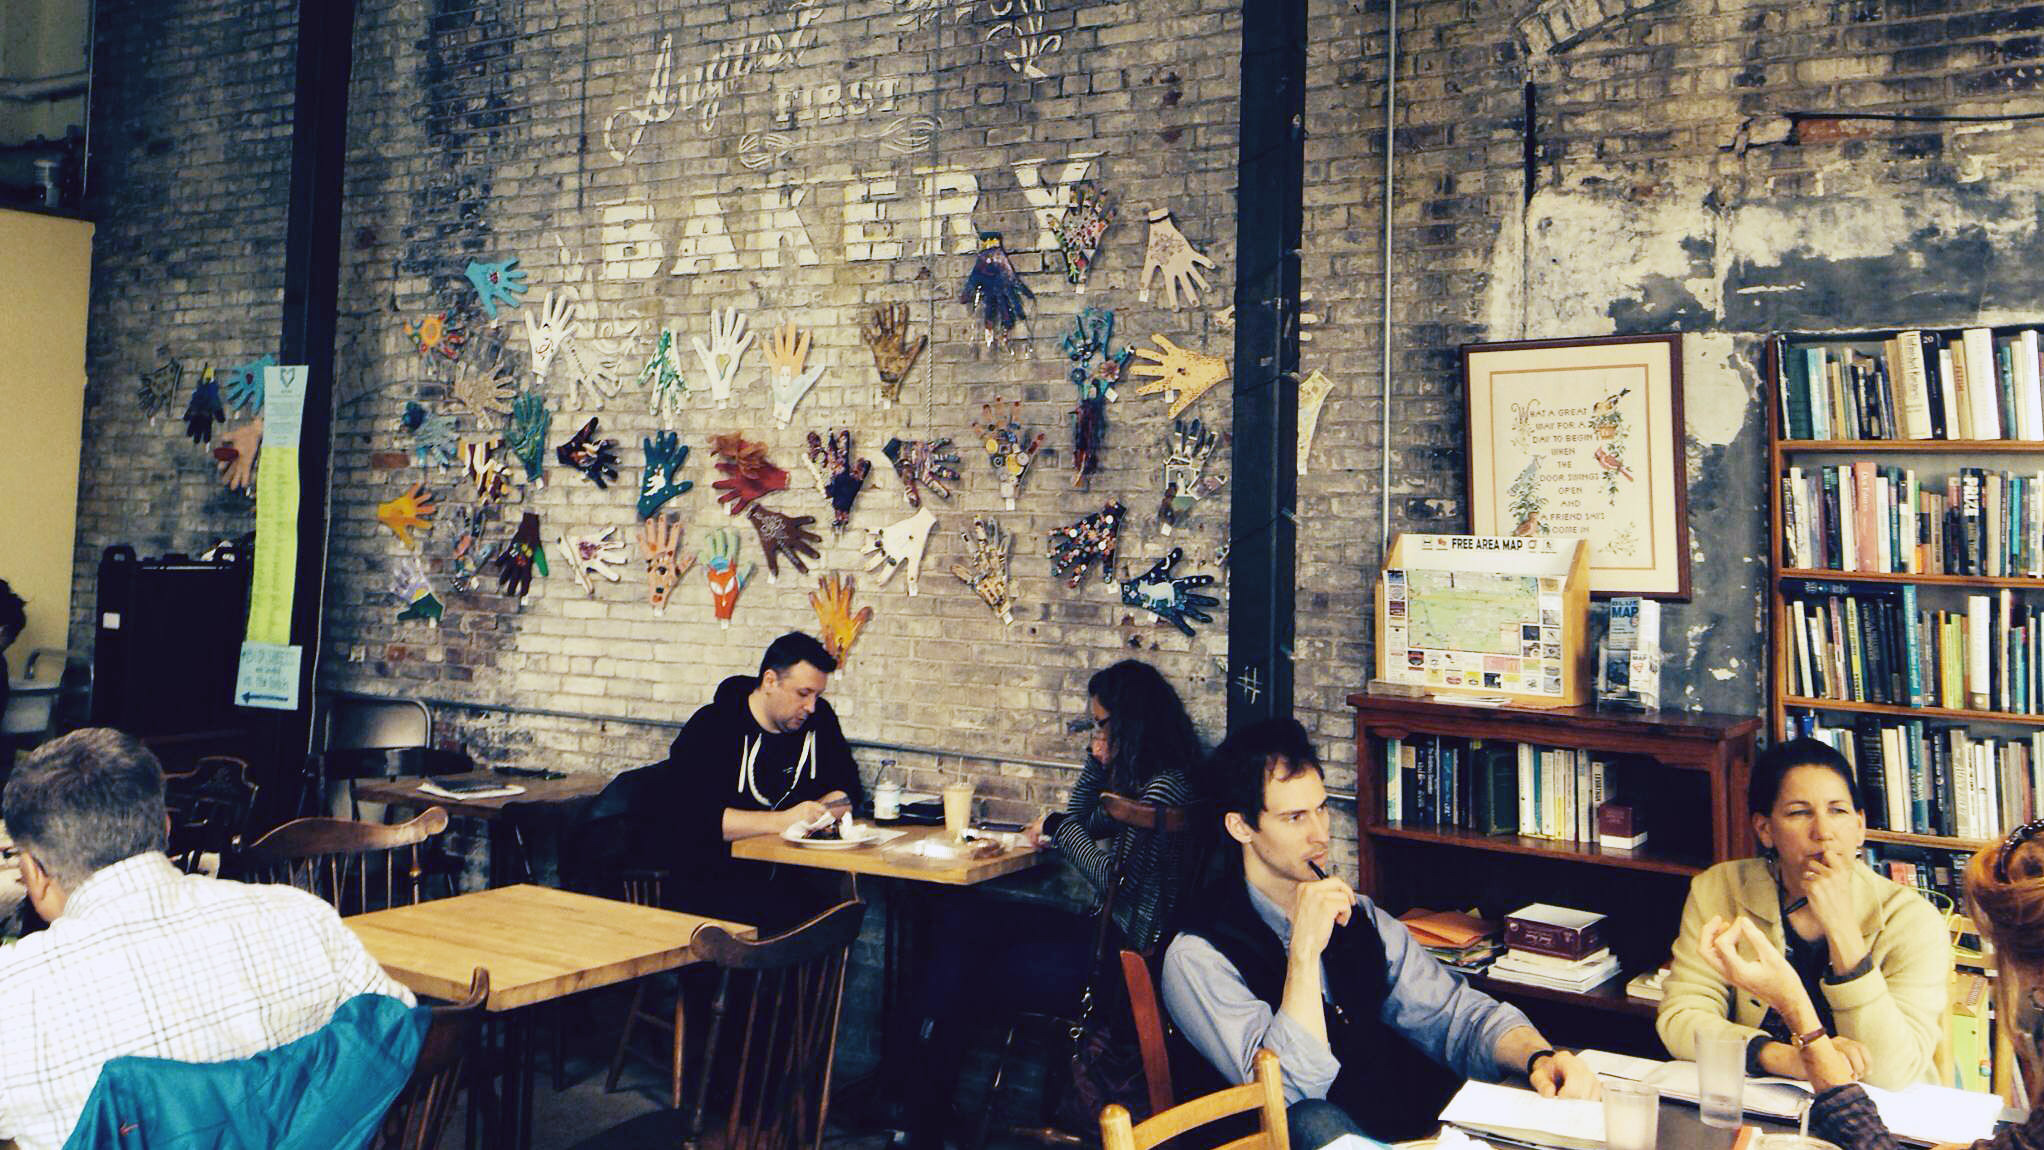 No Laptops, No Wi-Fi: How One Cafe Fired Up Sales